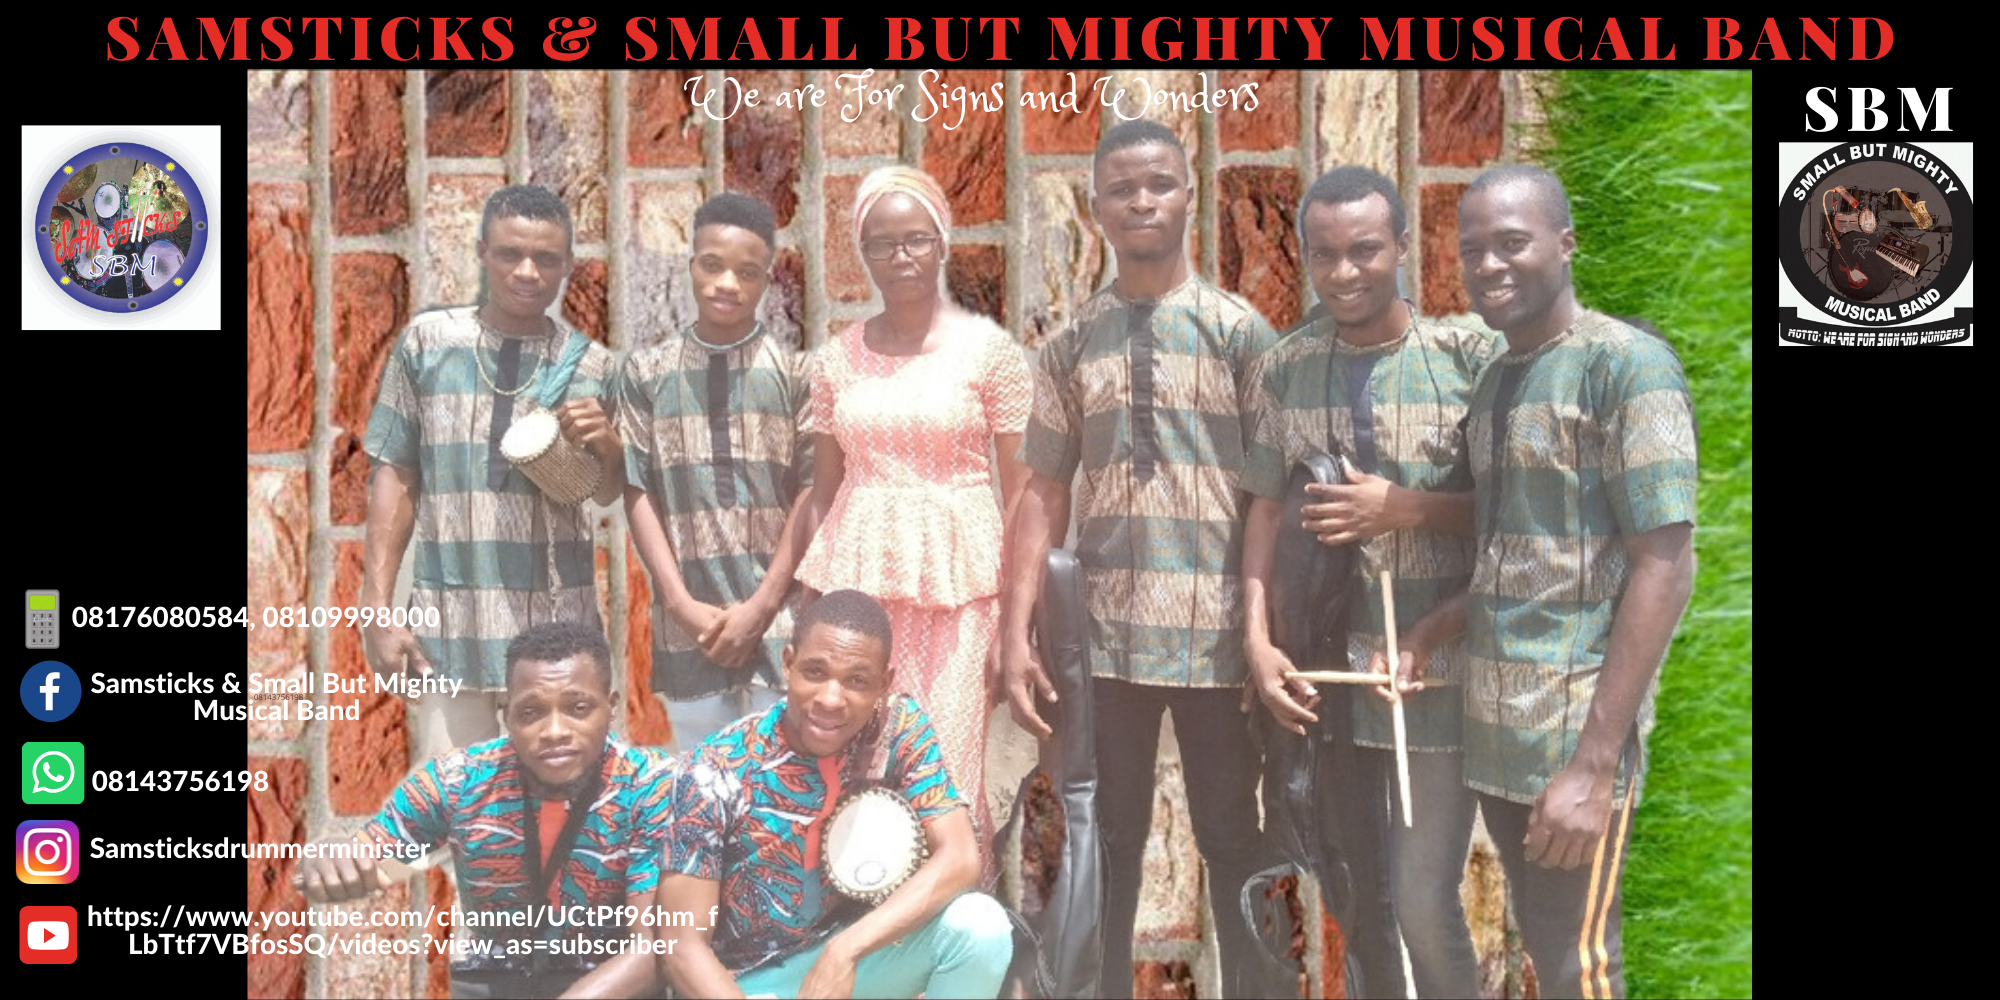 MEGA PRAISE 2020 - Small But Mighty Musical Band (SBM)